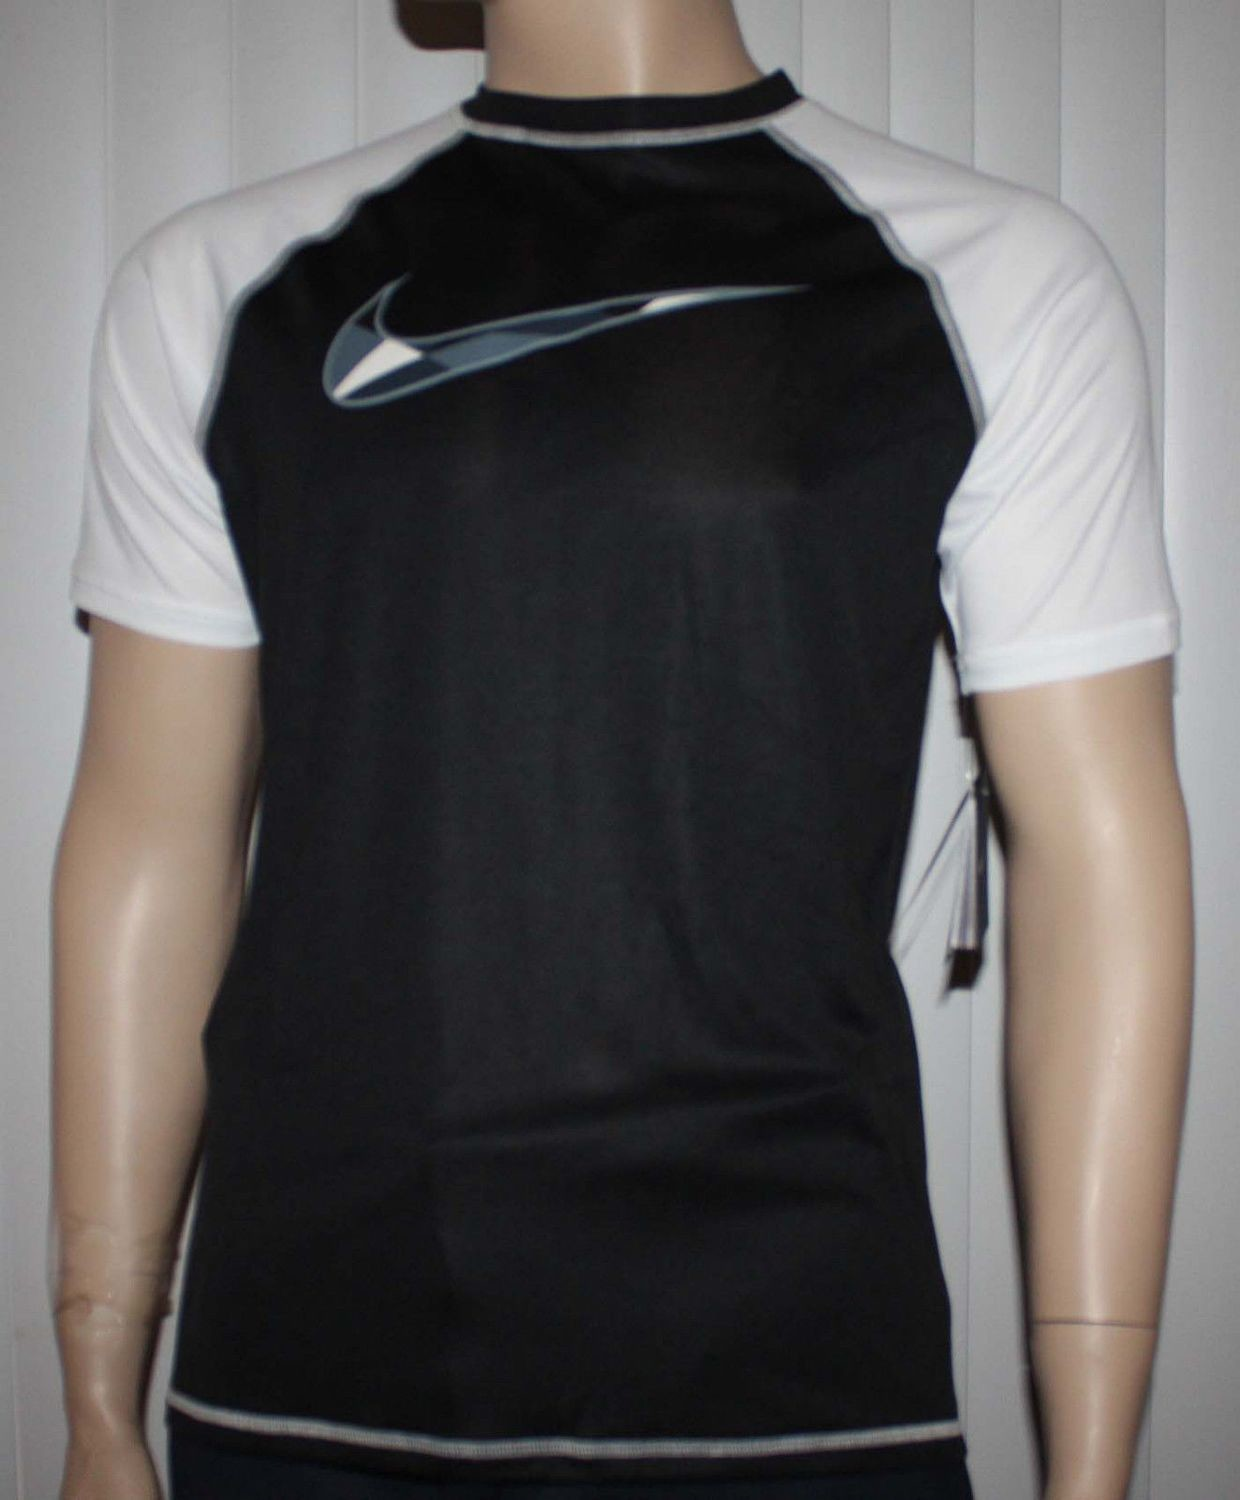 Nike Men's Dri-Fit Black/White Checked Swoosh UPF 40 + Shirt (Large)